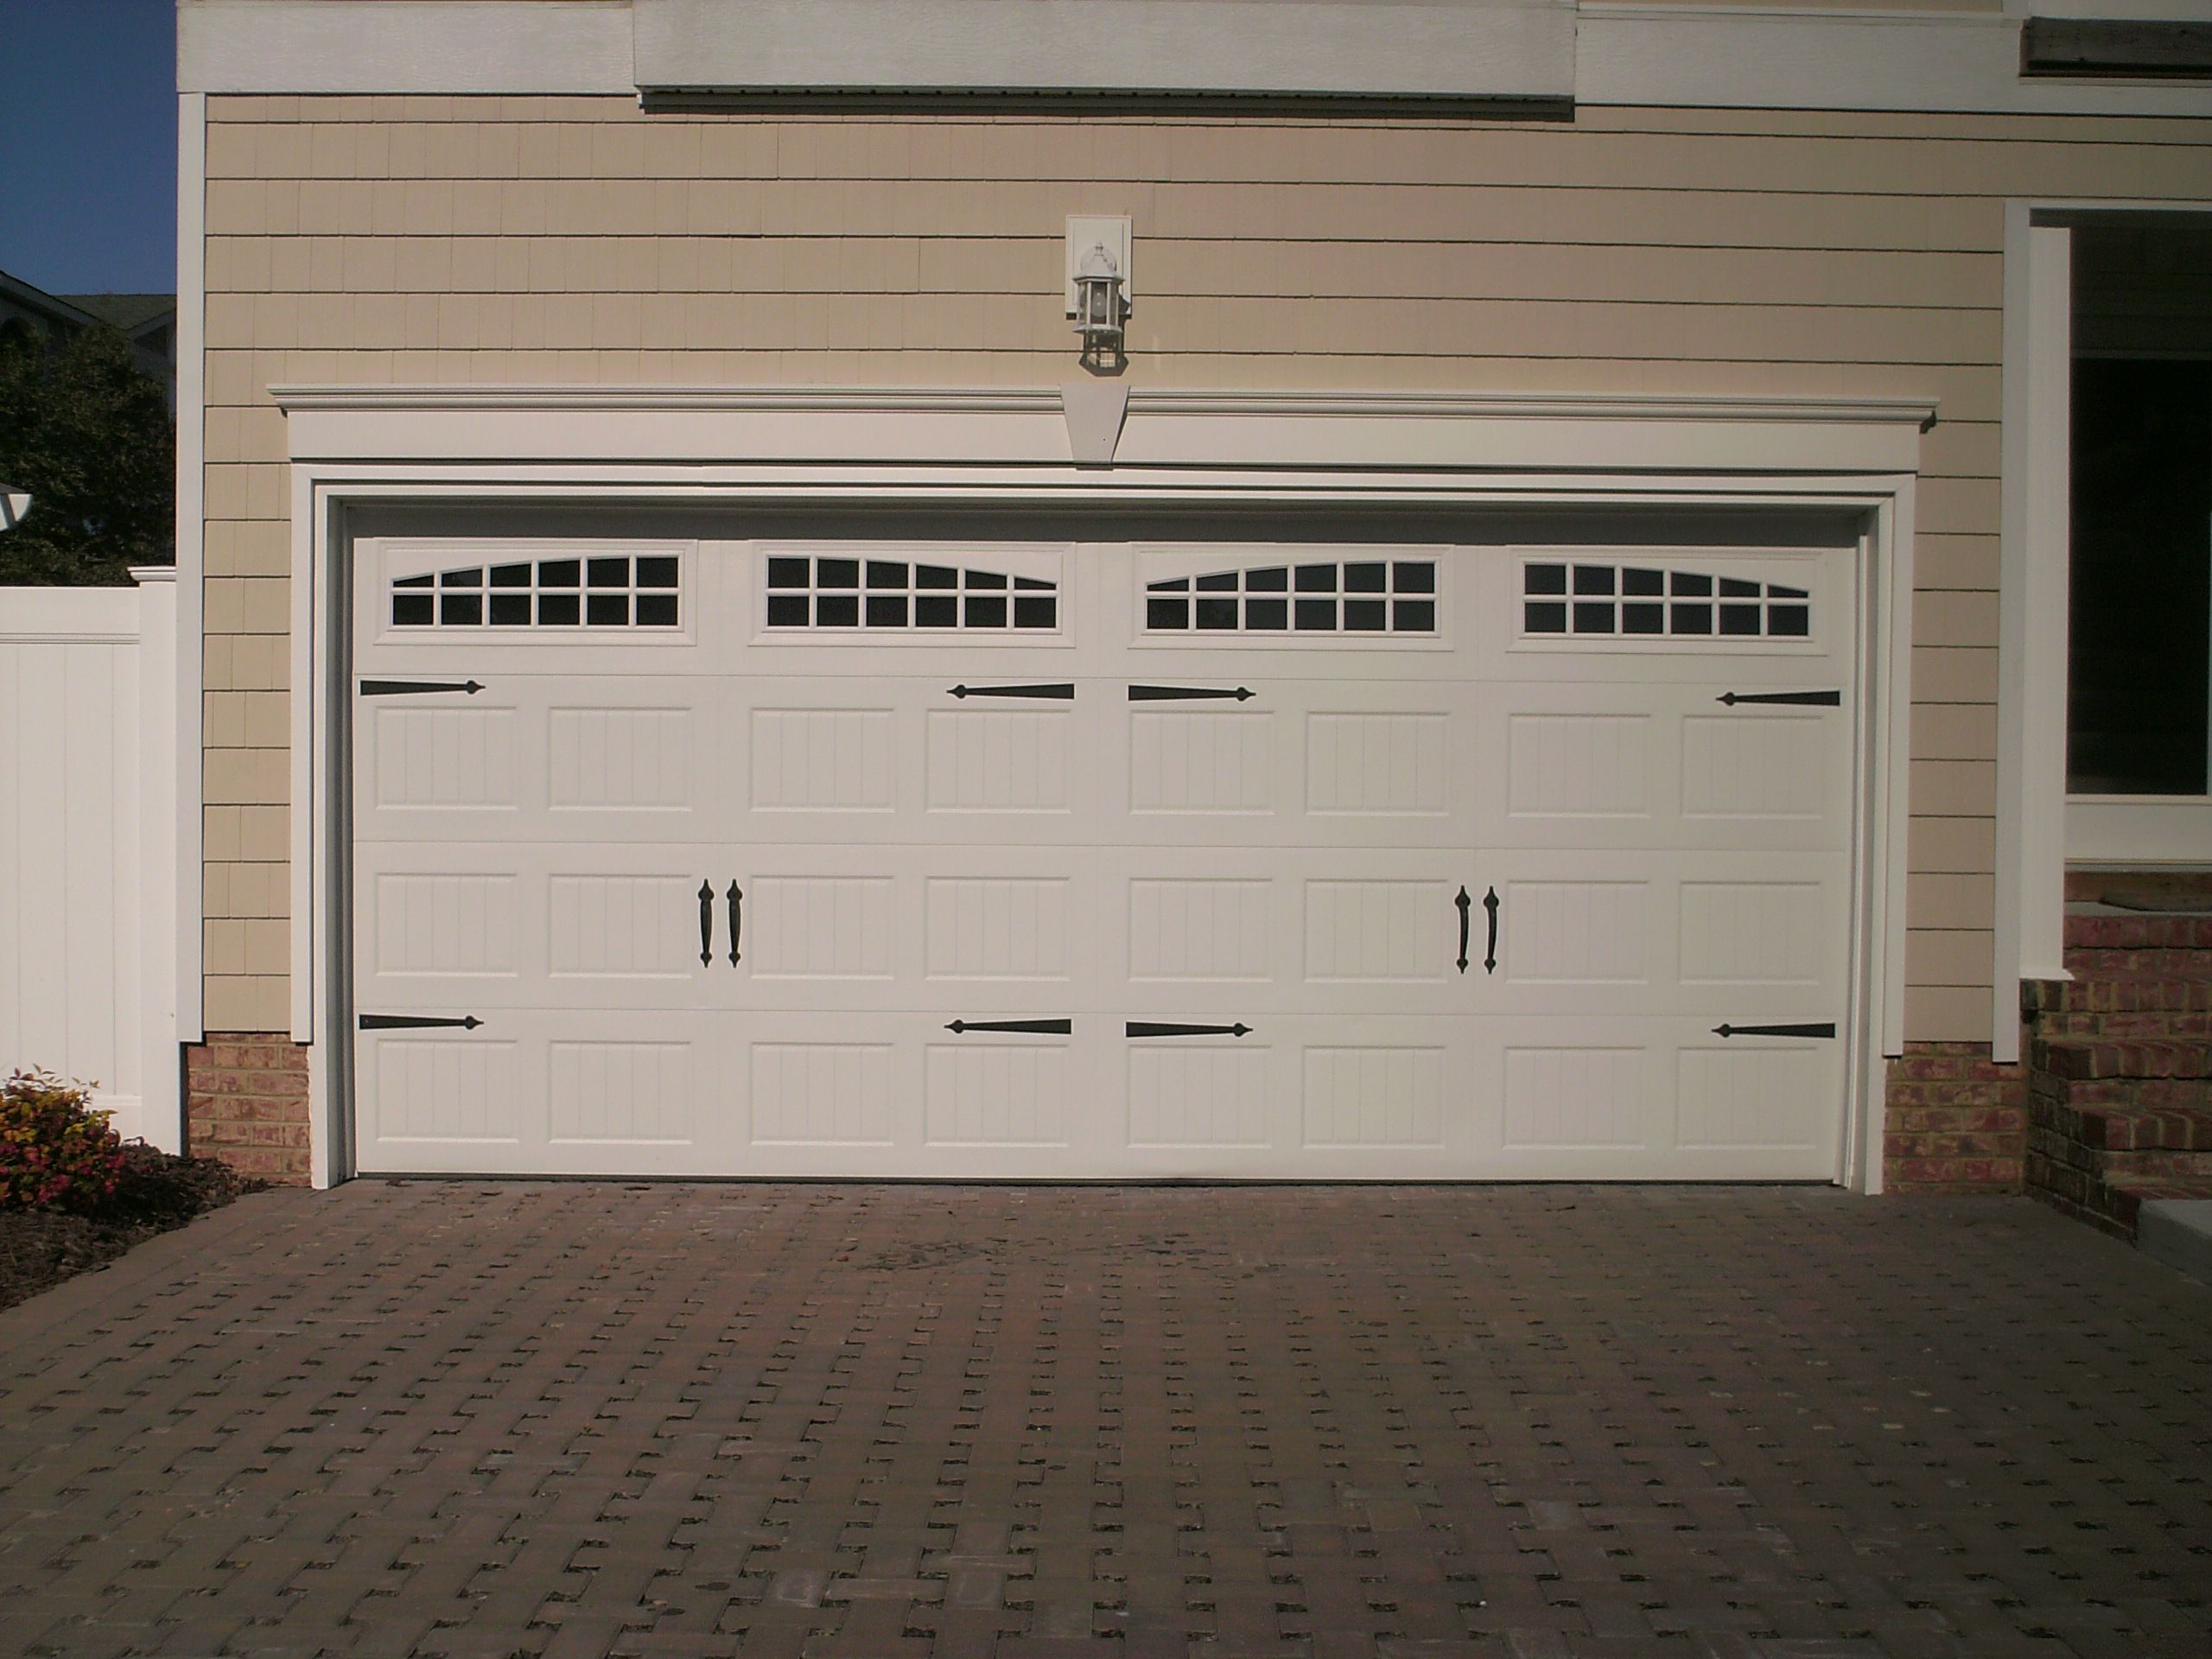 Repair tulsa ok tulsa garage door repair service broken springs - Pics Of Carriage House Garage Door Carriage Style Garage Door Garage Doors Birmingham